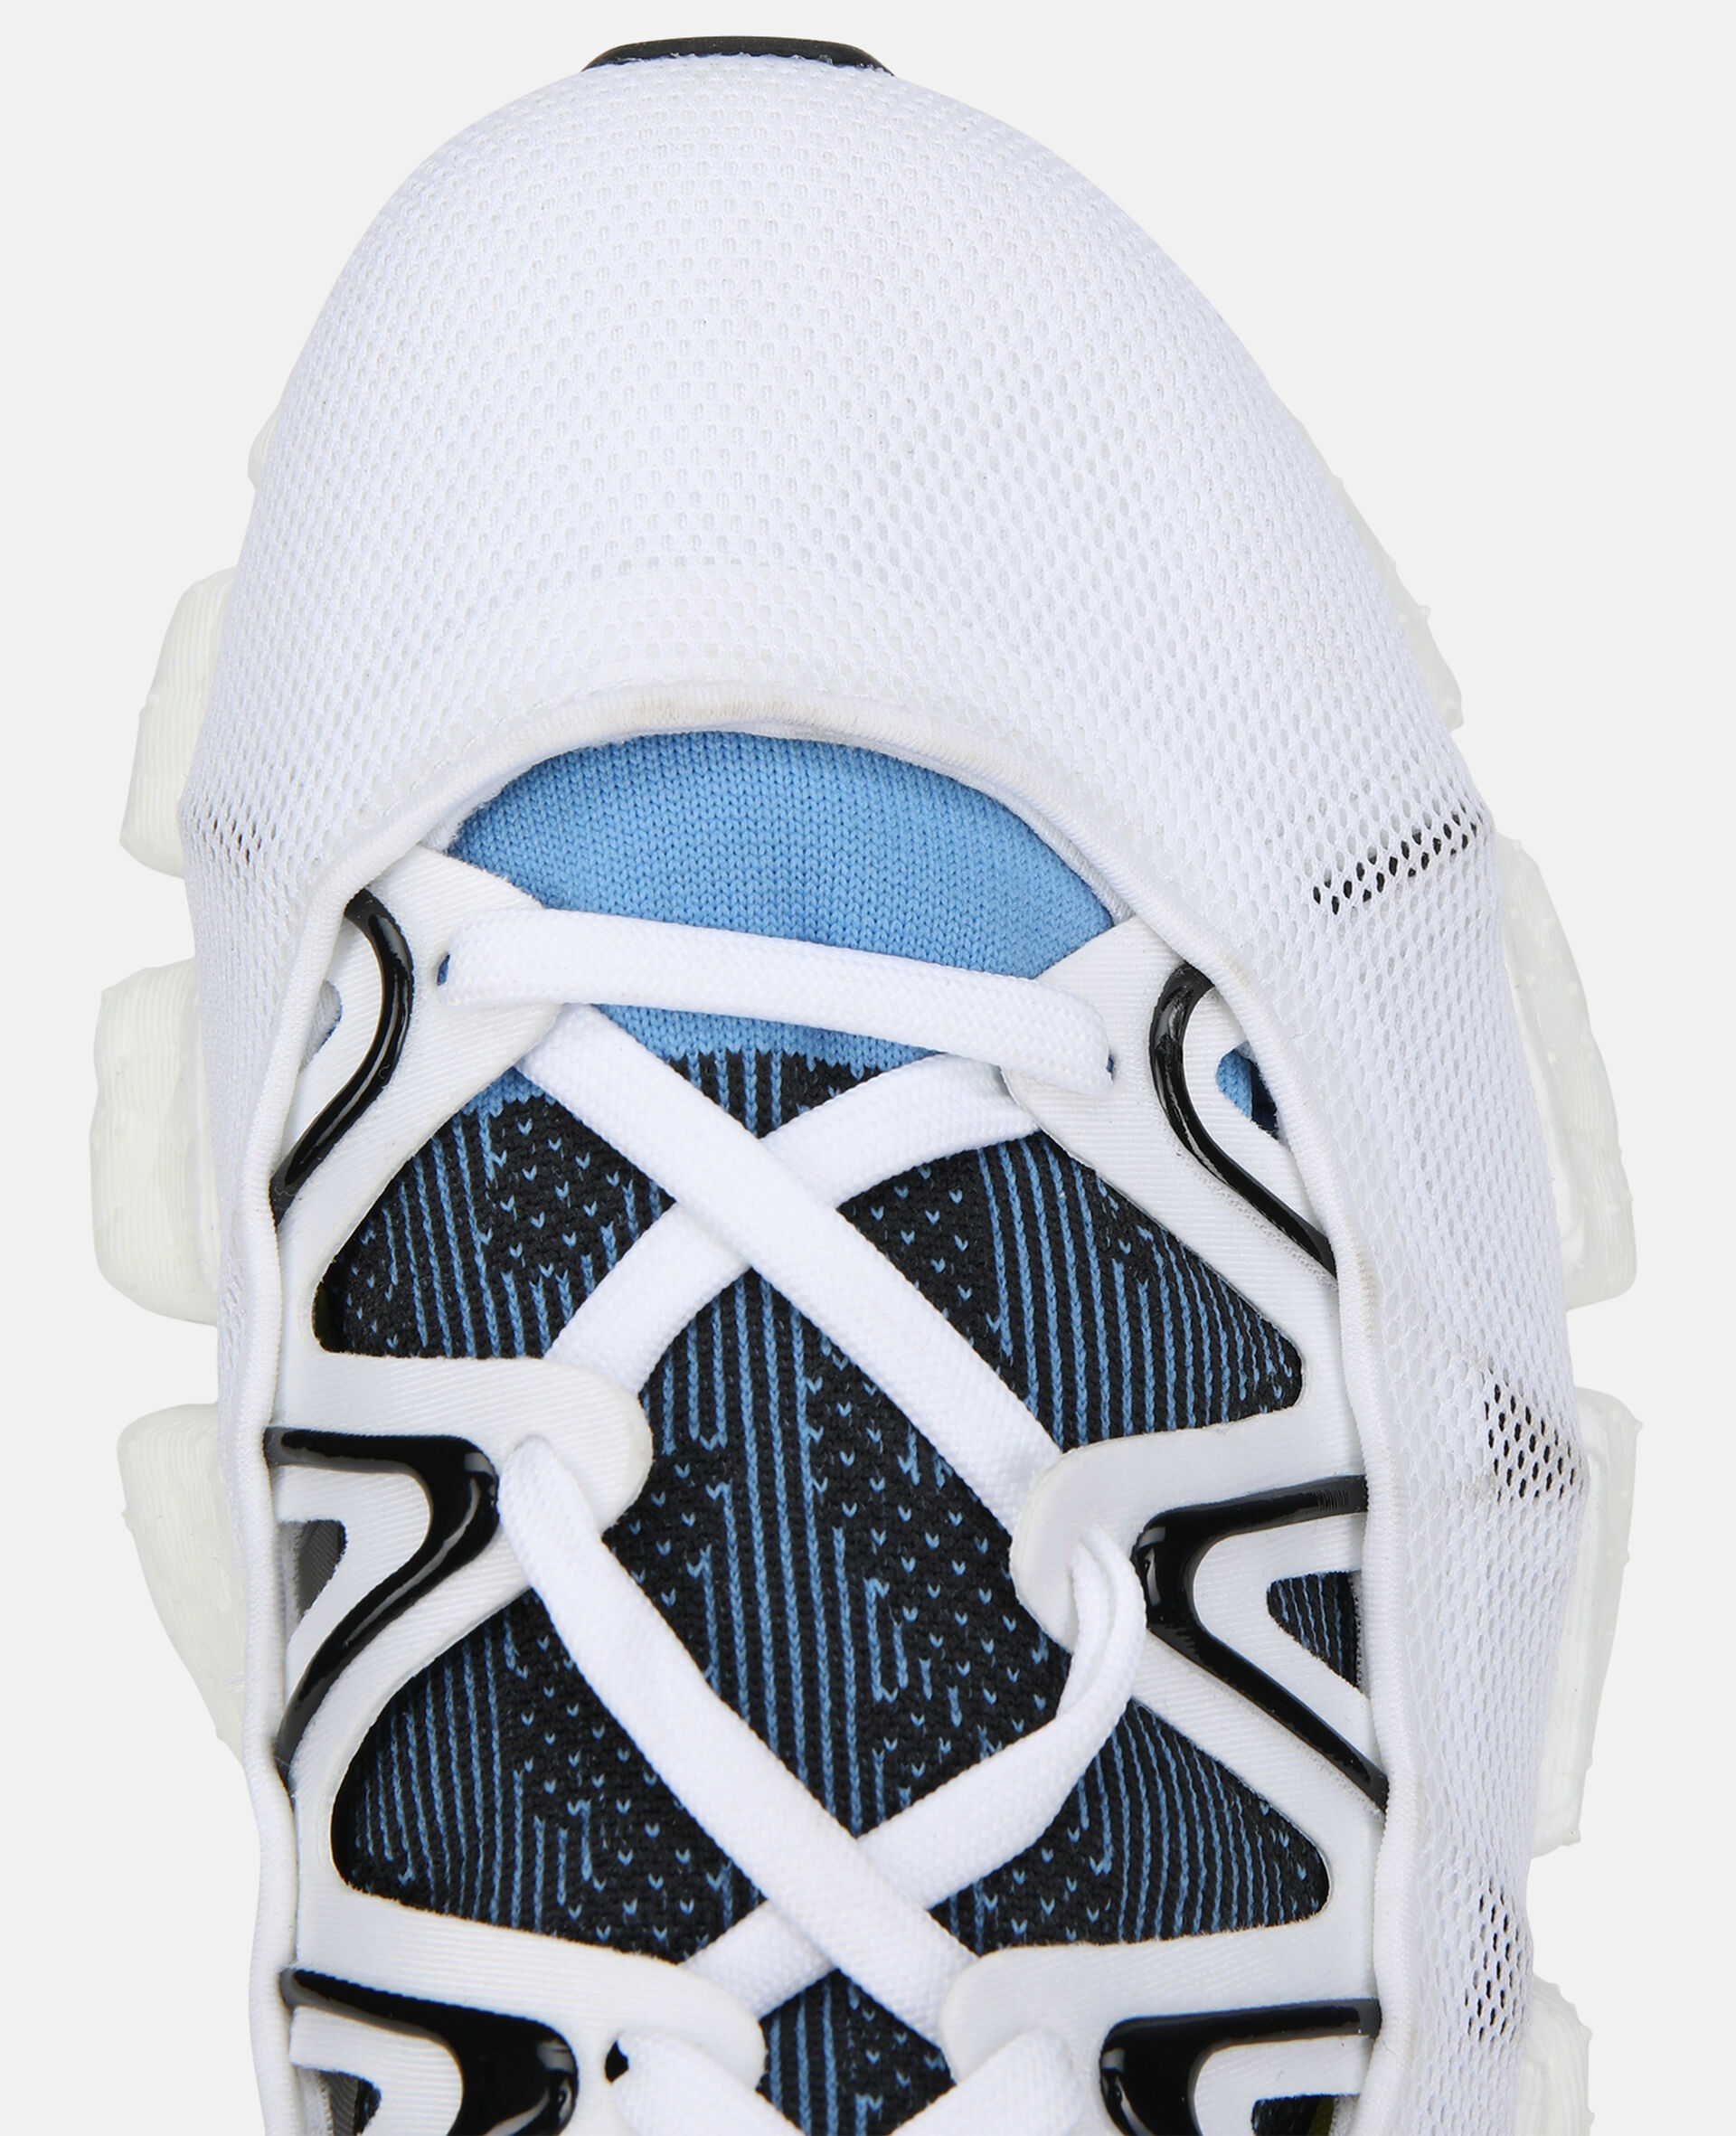 Climacool Vento 3-in-1 Sneakers -White-large image number 3